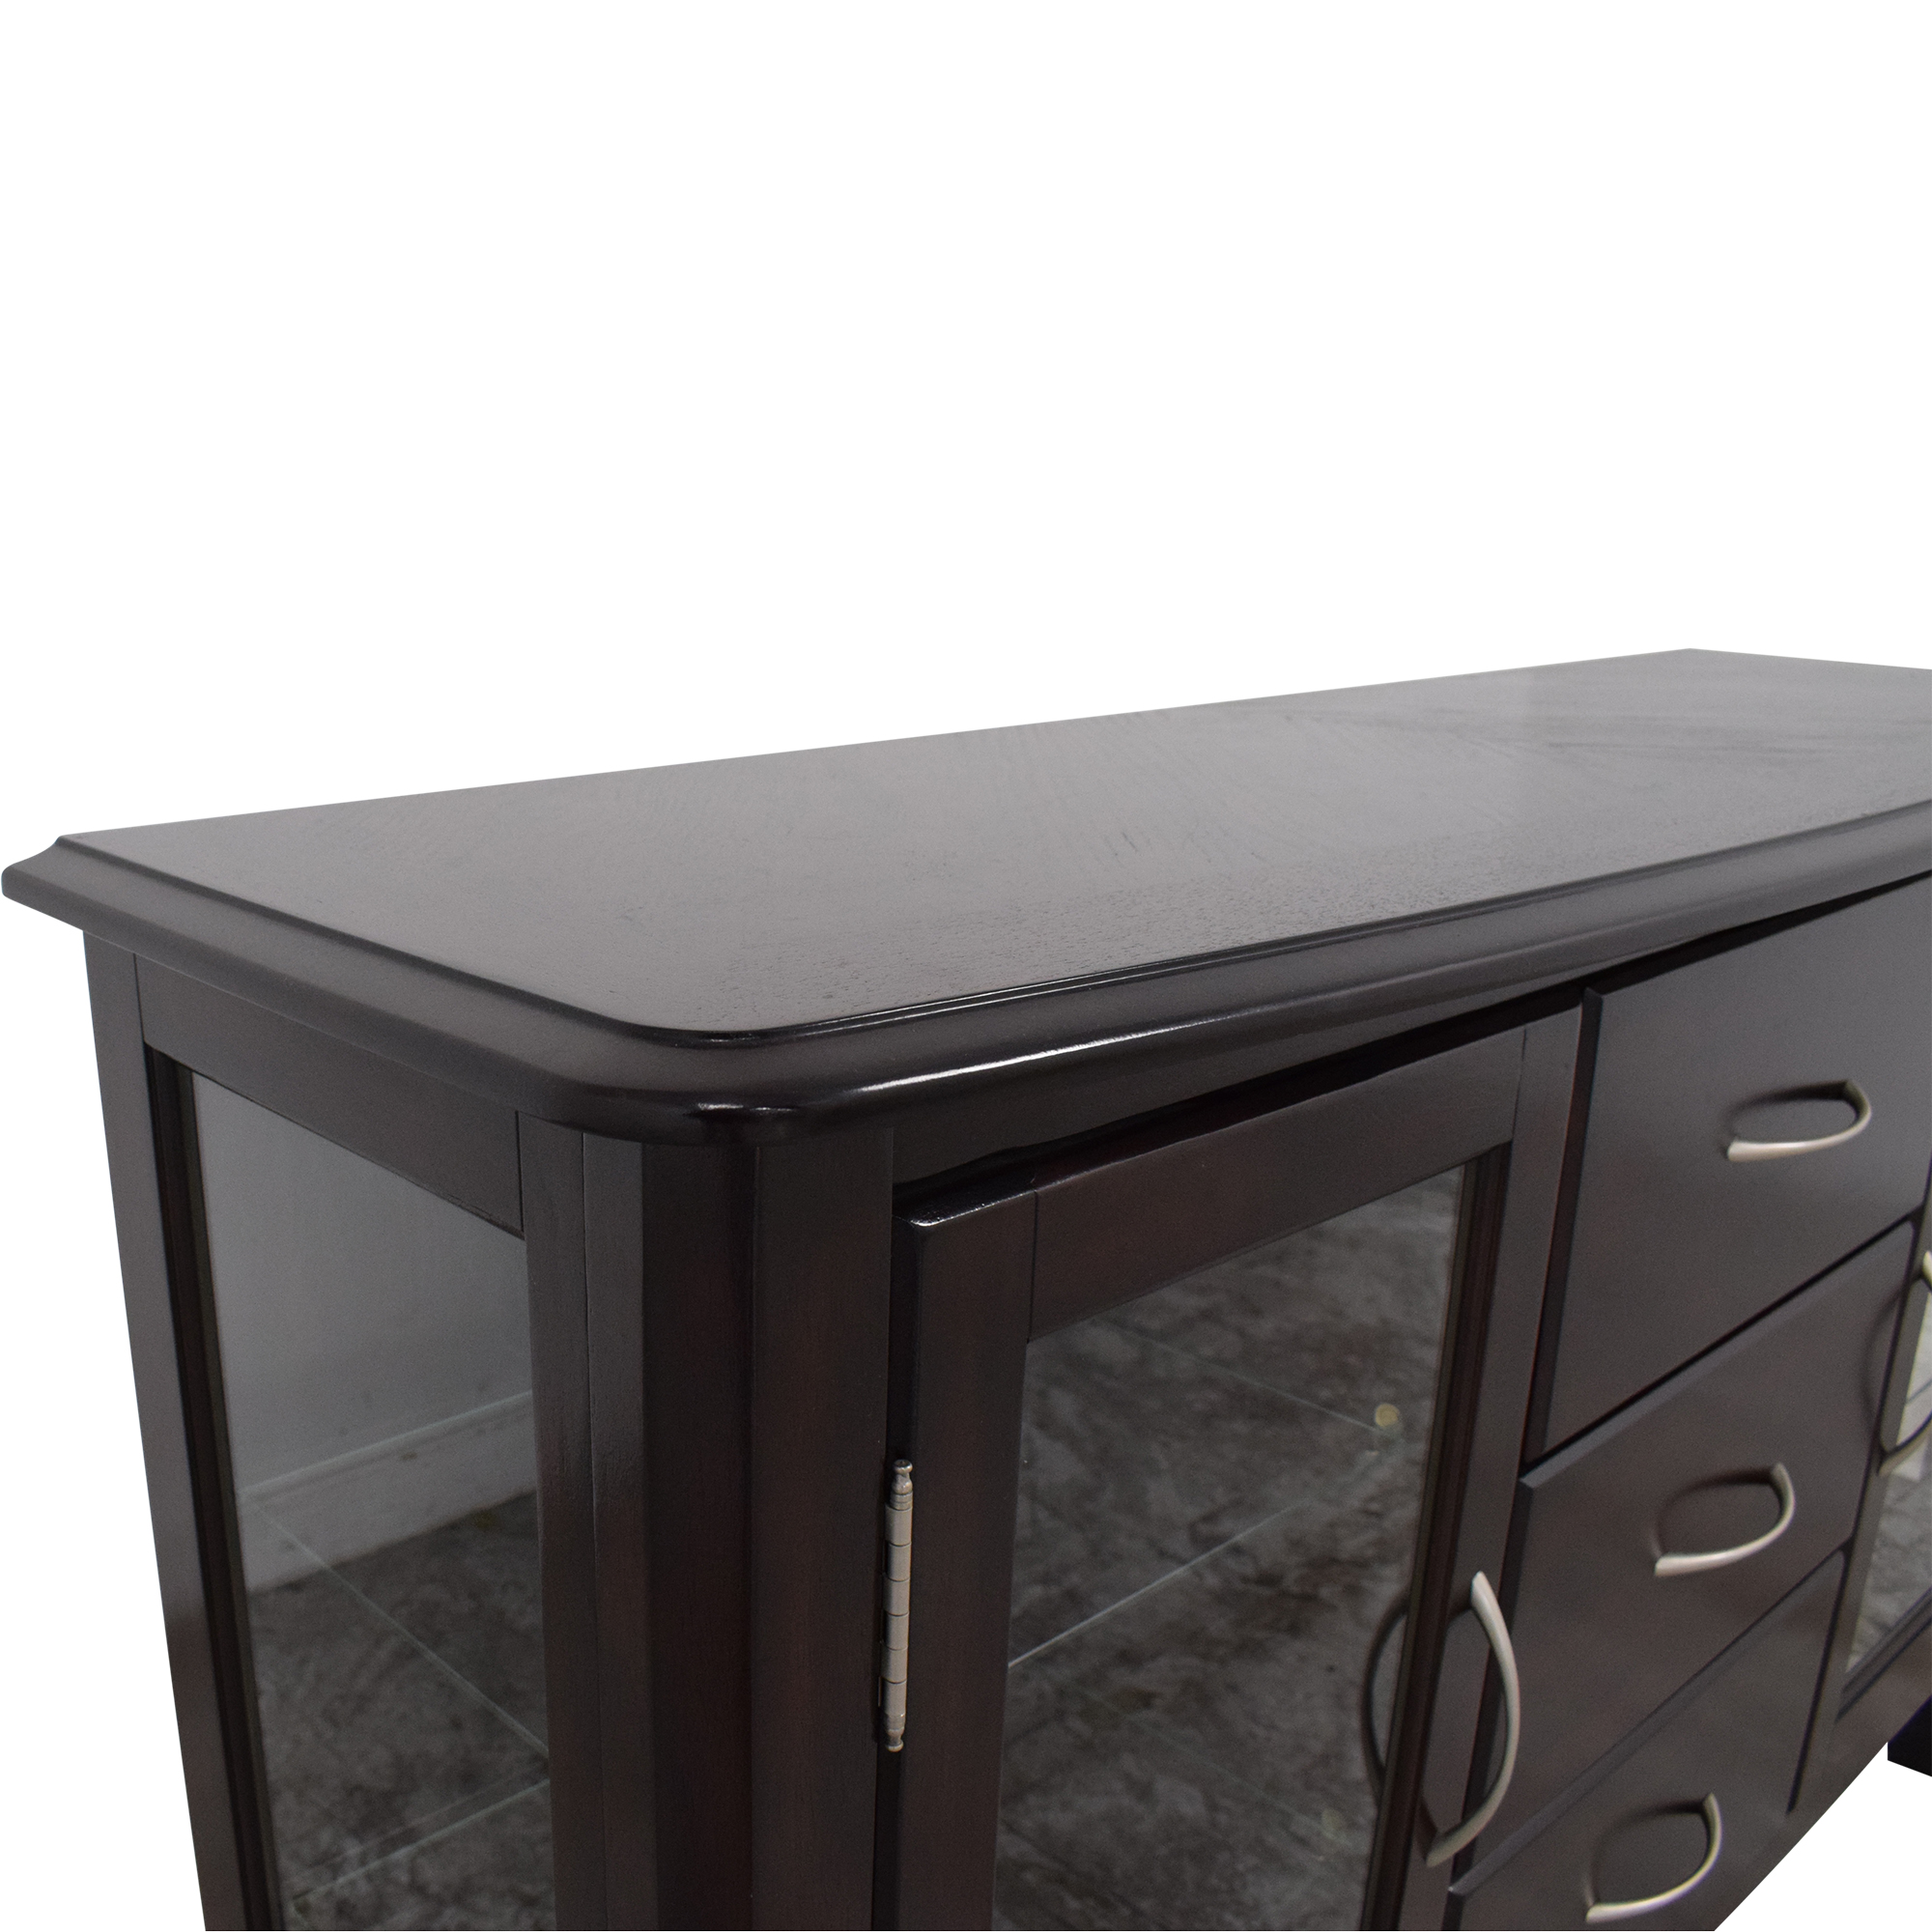 buy Raymour & Flanigan Buffet Table Raymour & Flanigan Cabinets & Sideboards